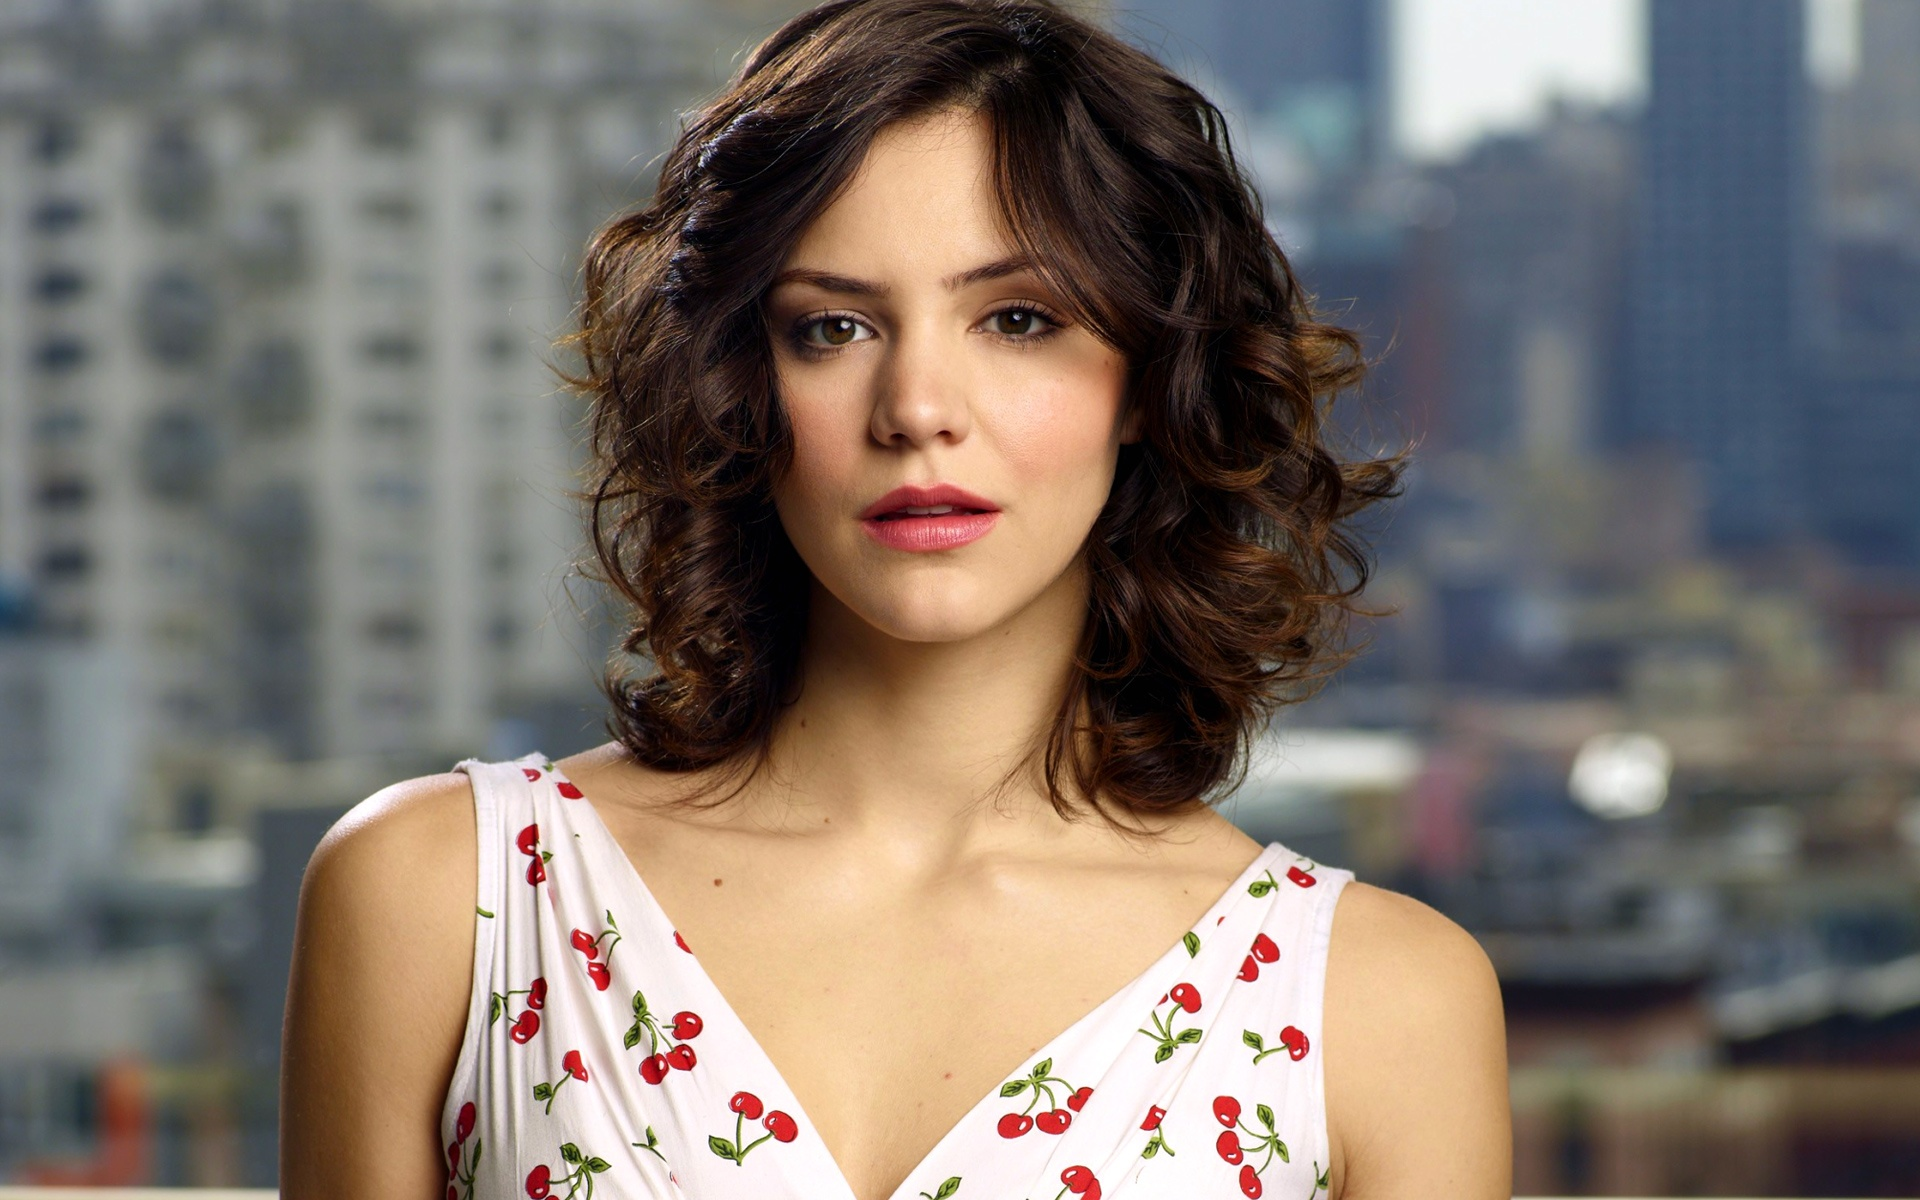 katharine mcphee wallpapers hd A1